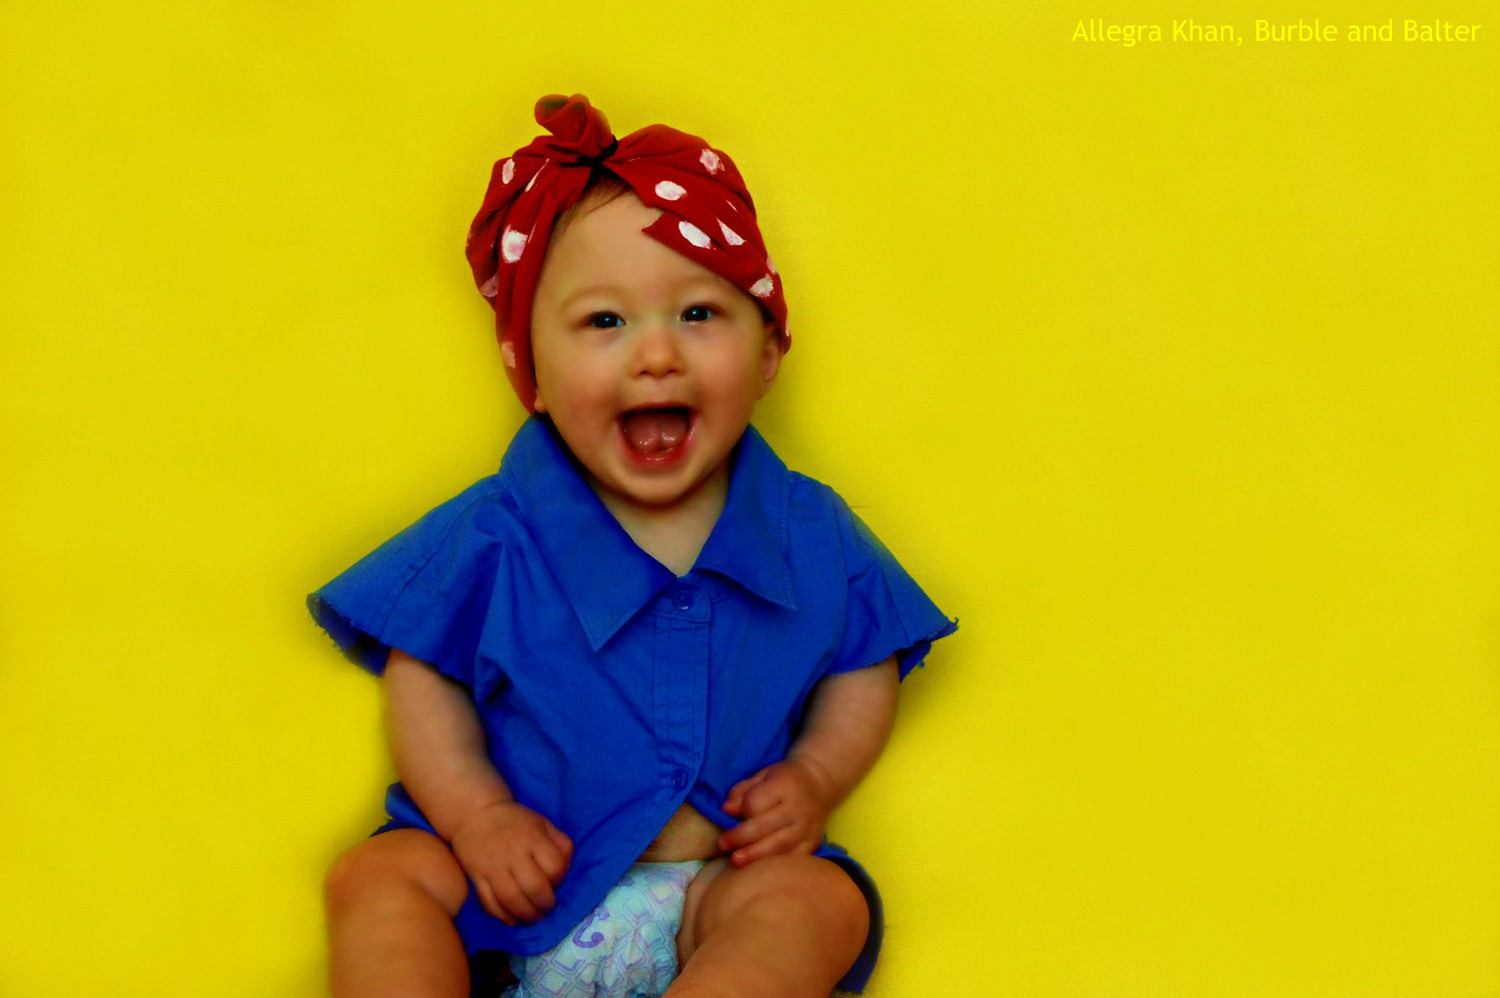 Rosie-the-Riveter-2-Baby-Photoshoot-Costume-Burble-and-Balter.jpg